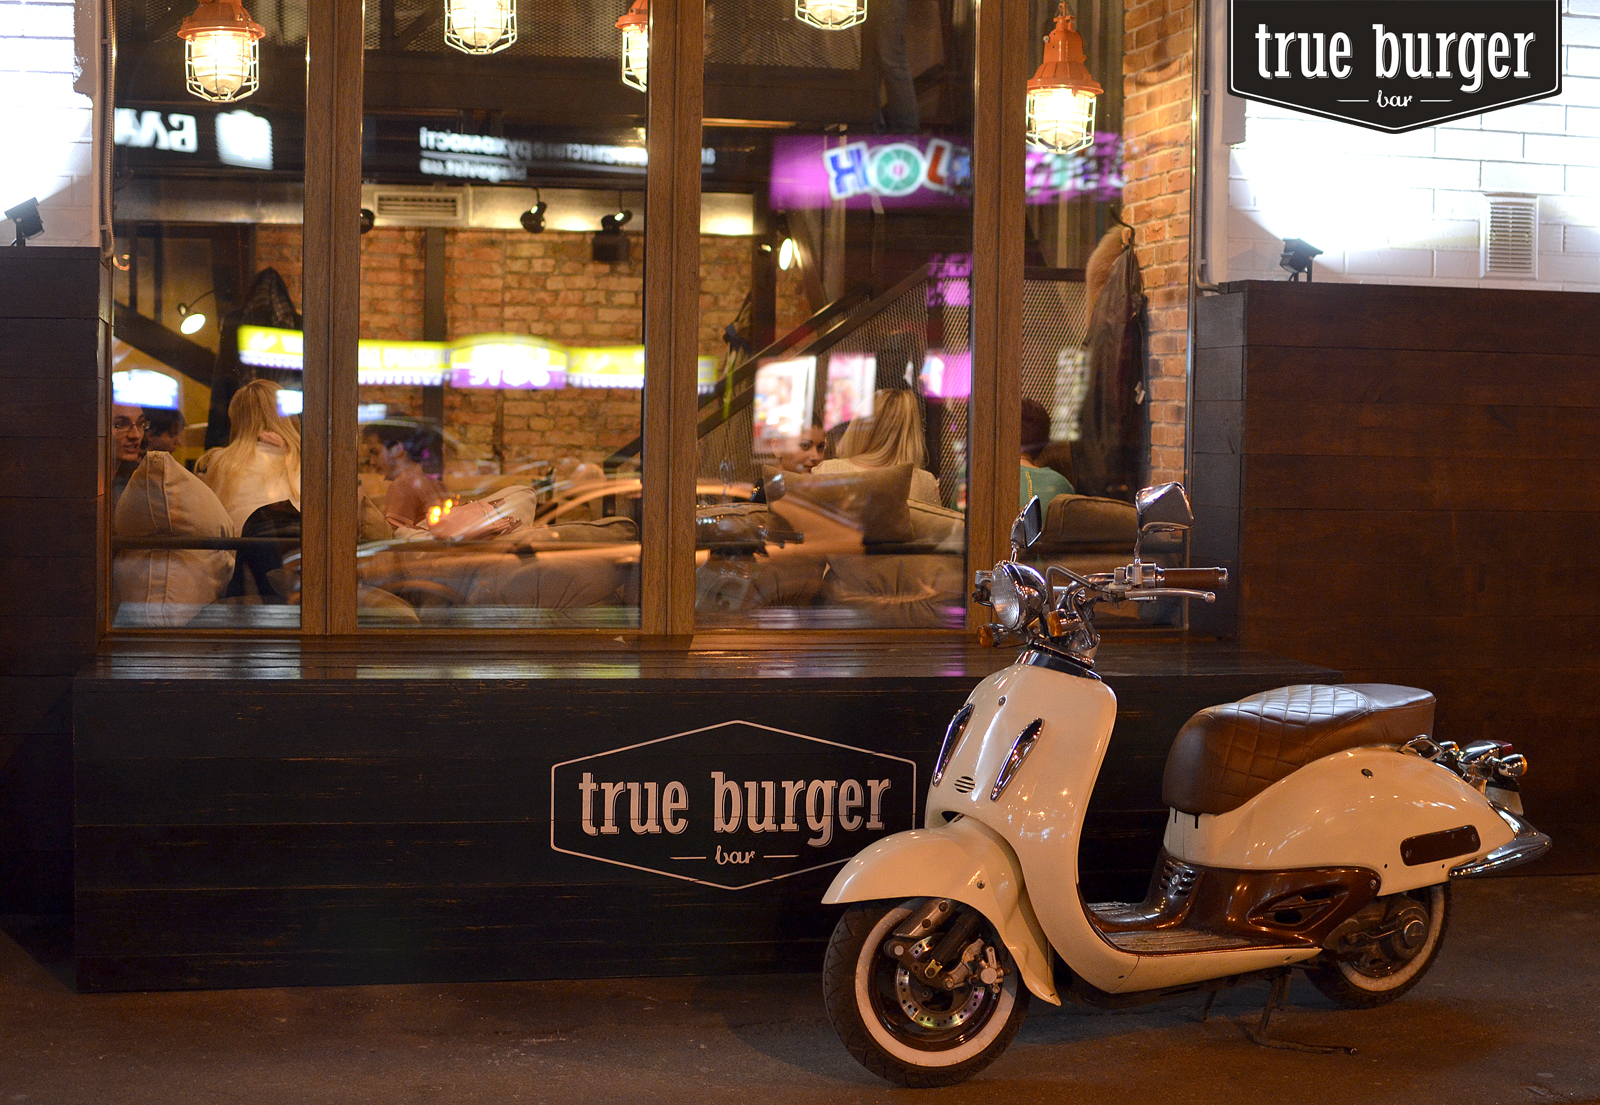 true-burger-bar-krepkaya-muzhskaya-druzhba-1